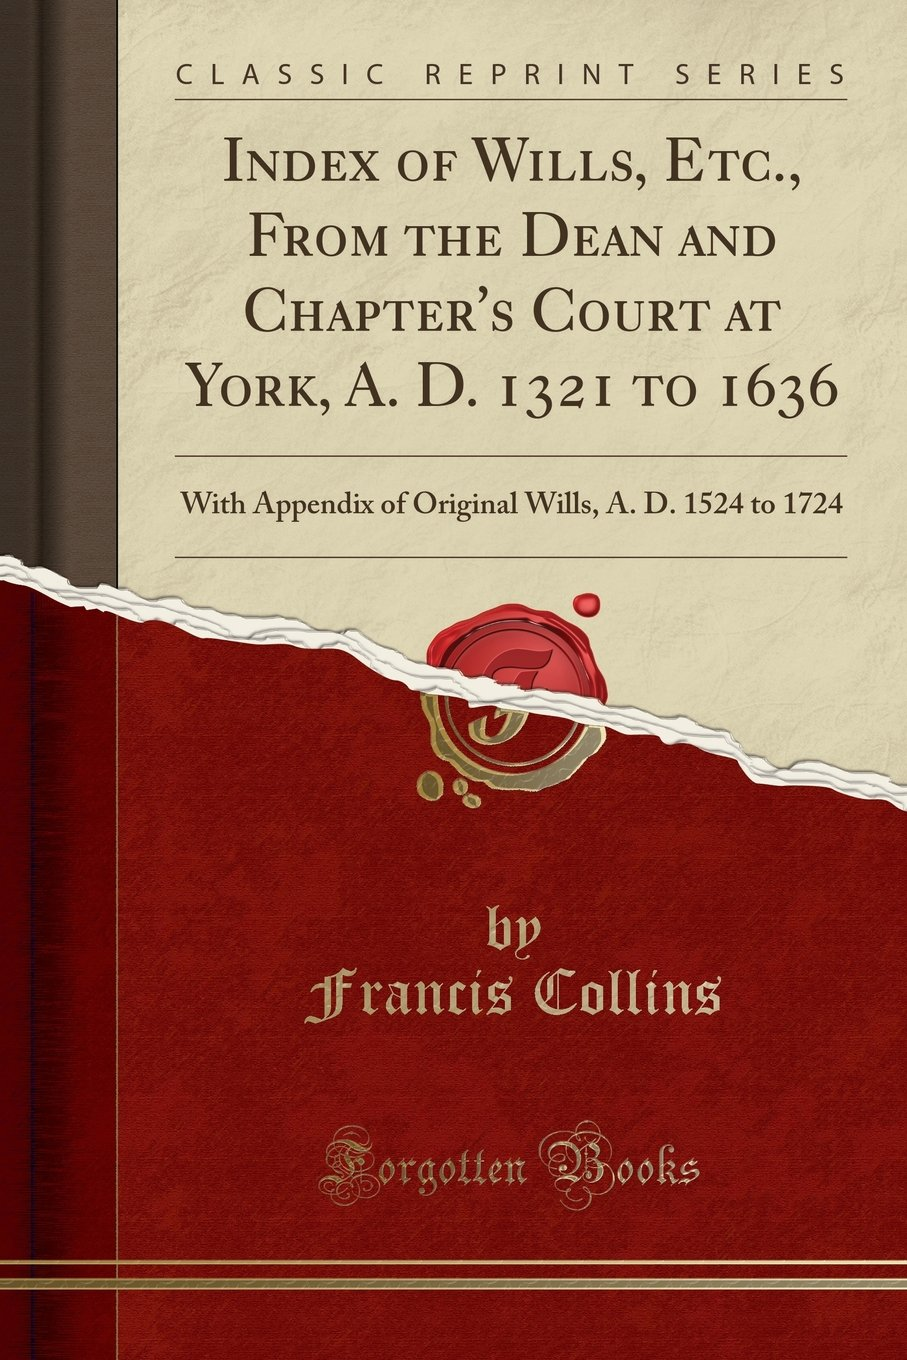 Download Index of Wills, Etc., From the Dean and Chapter's Court at York, A. D. 1321 to 1636: With Appendix of Original Wills, A. D. 1524 to 1724 (Classic Reprint) ebook